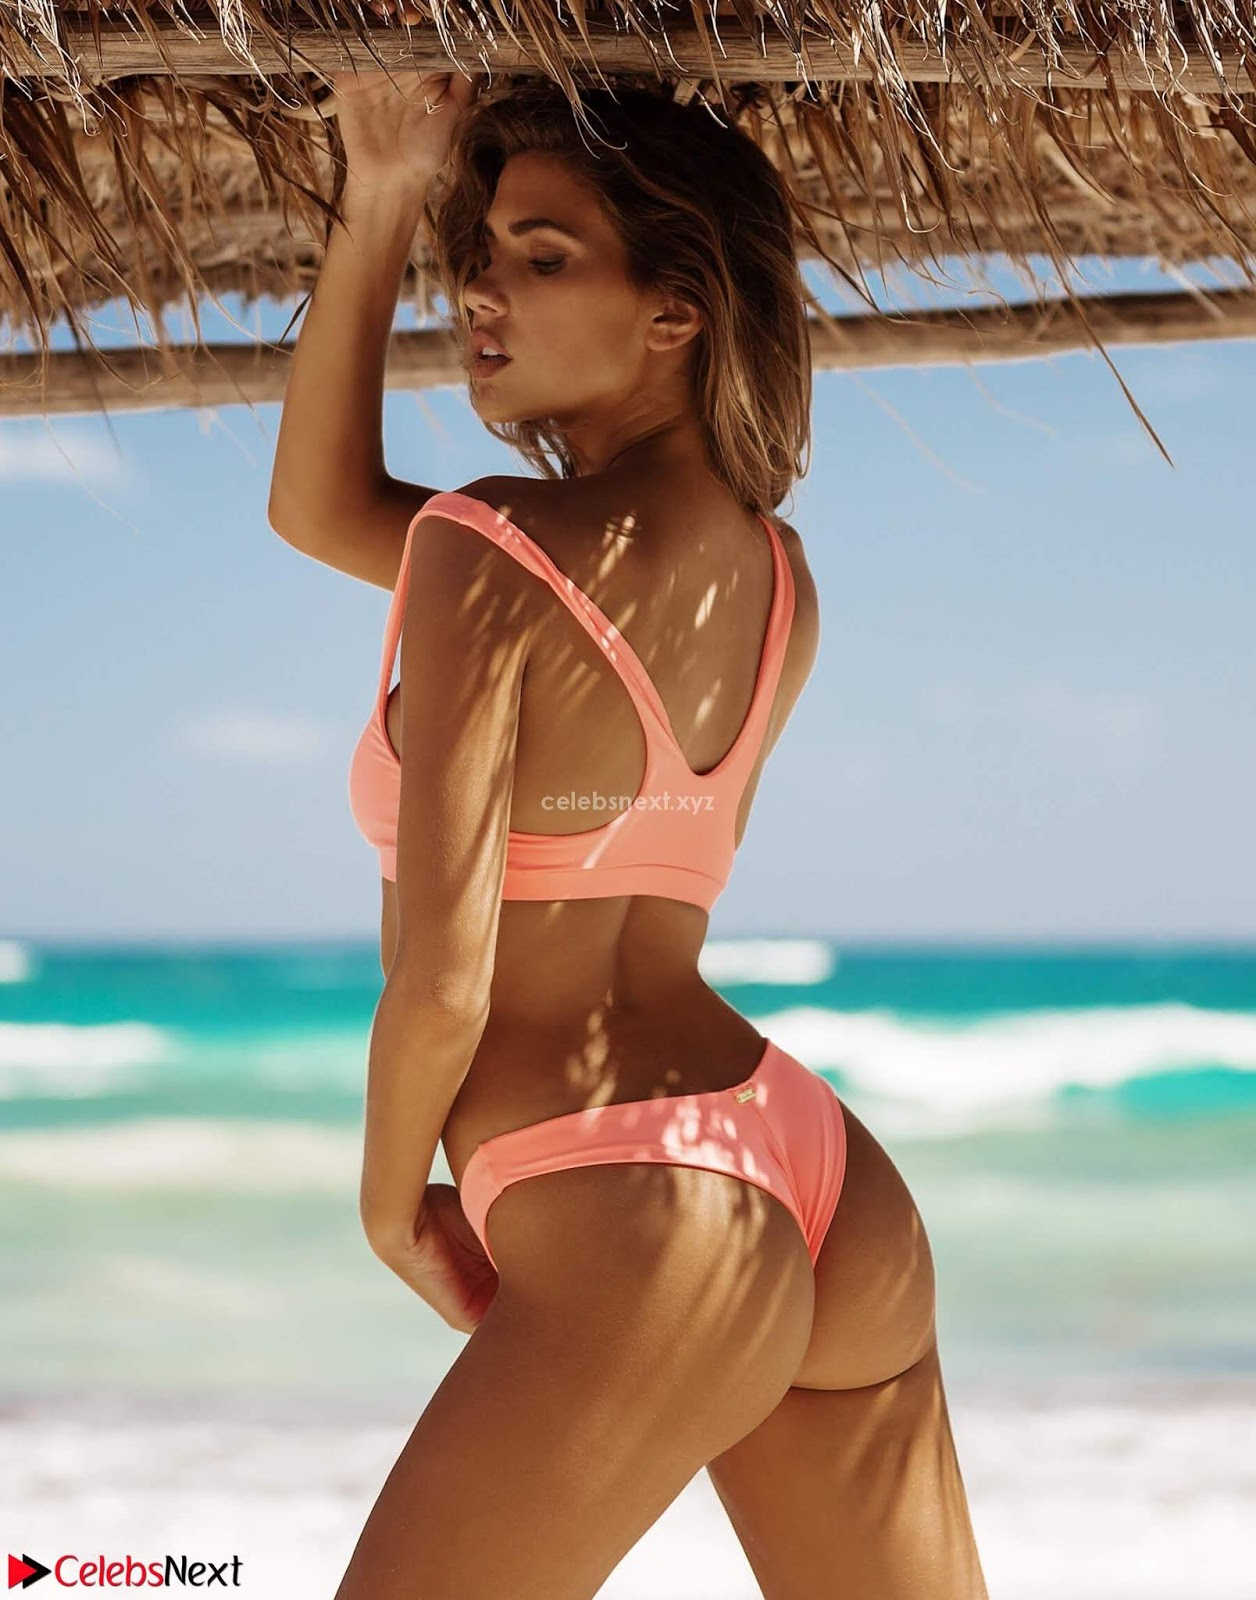 Kara Del Toro - Sexy Instagram Bikini Model with lovely ass booty super sexy tits boobs wow